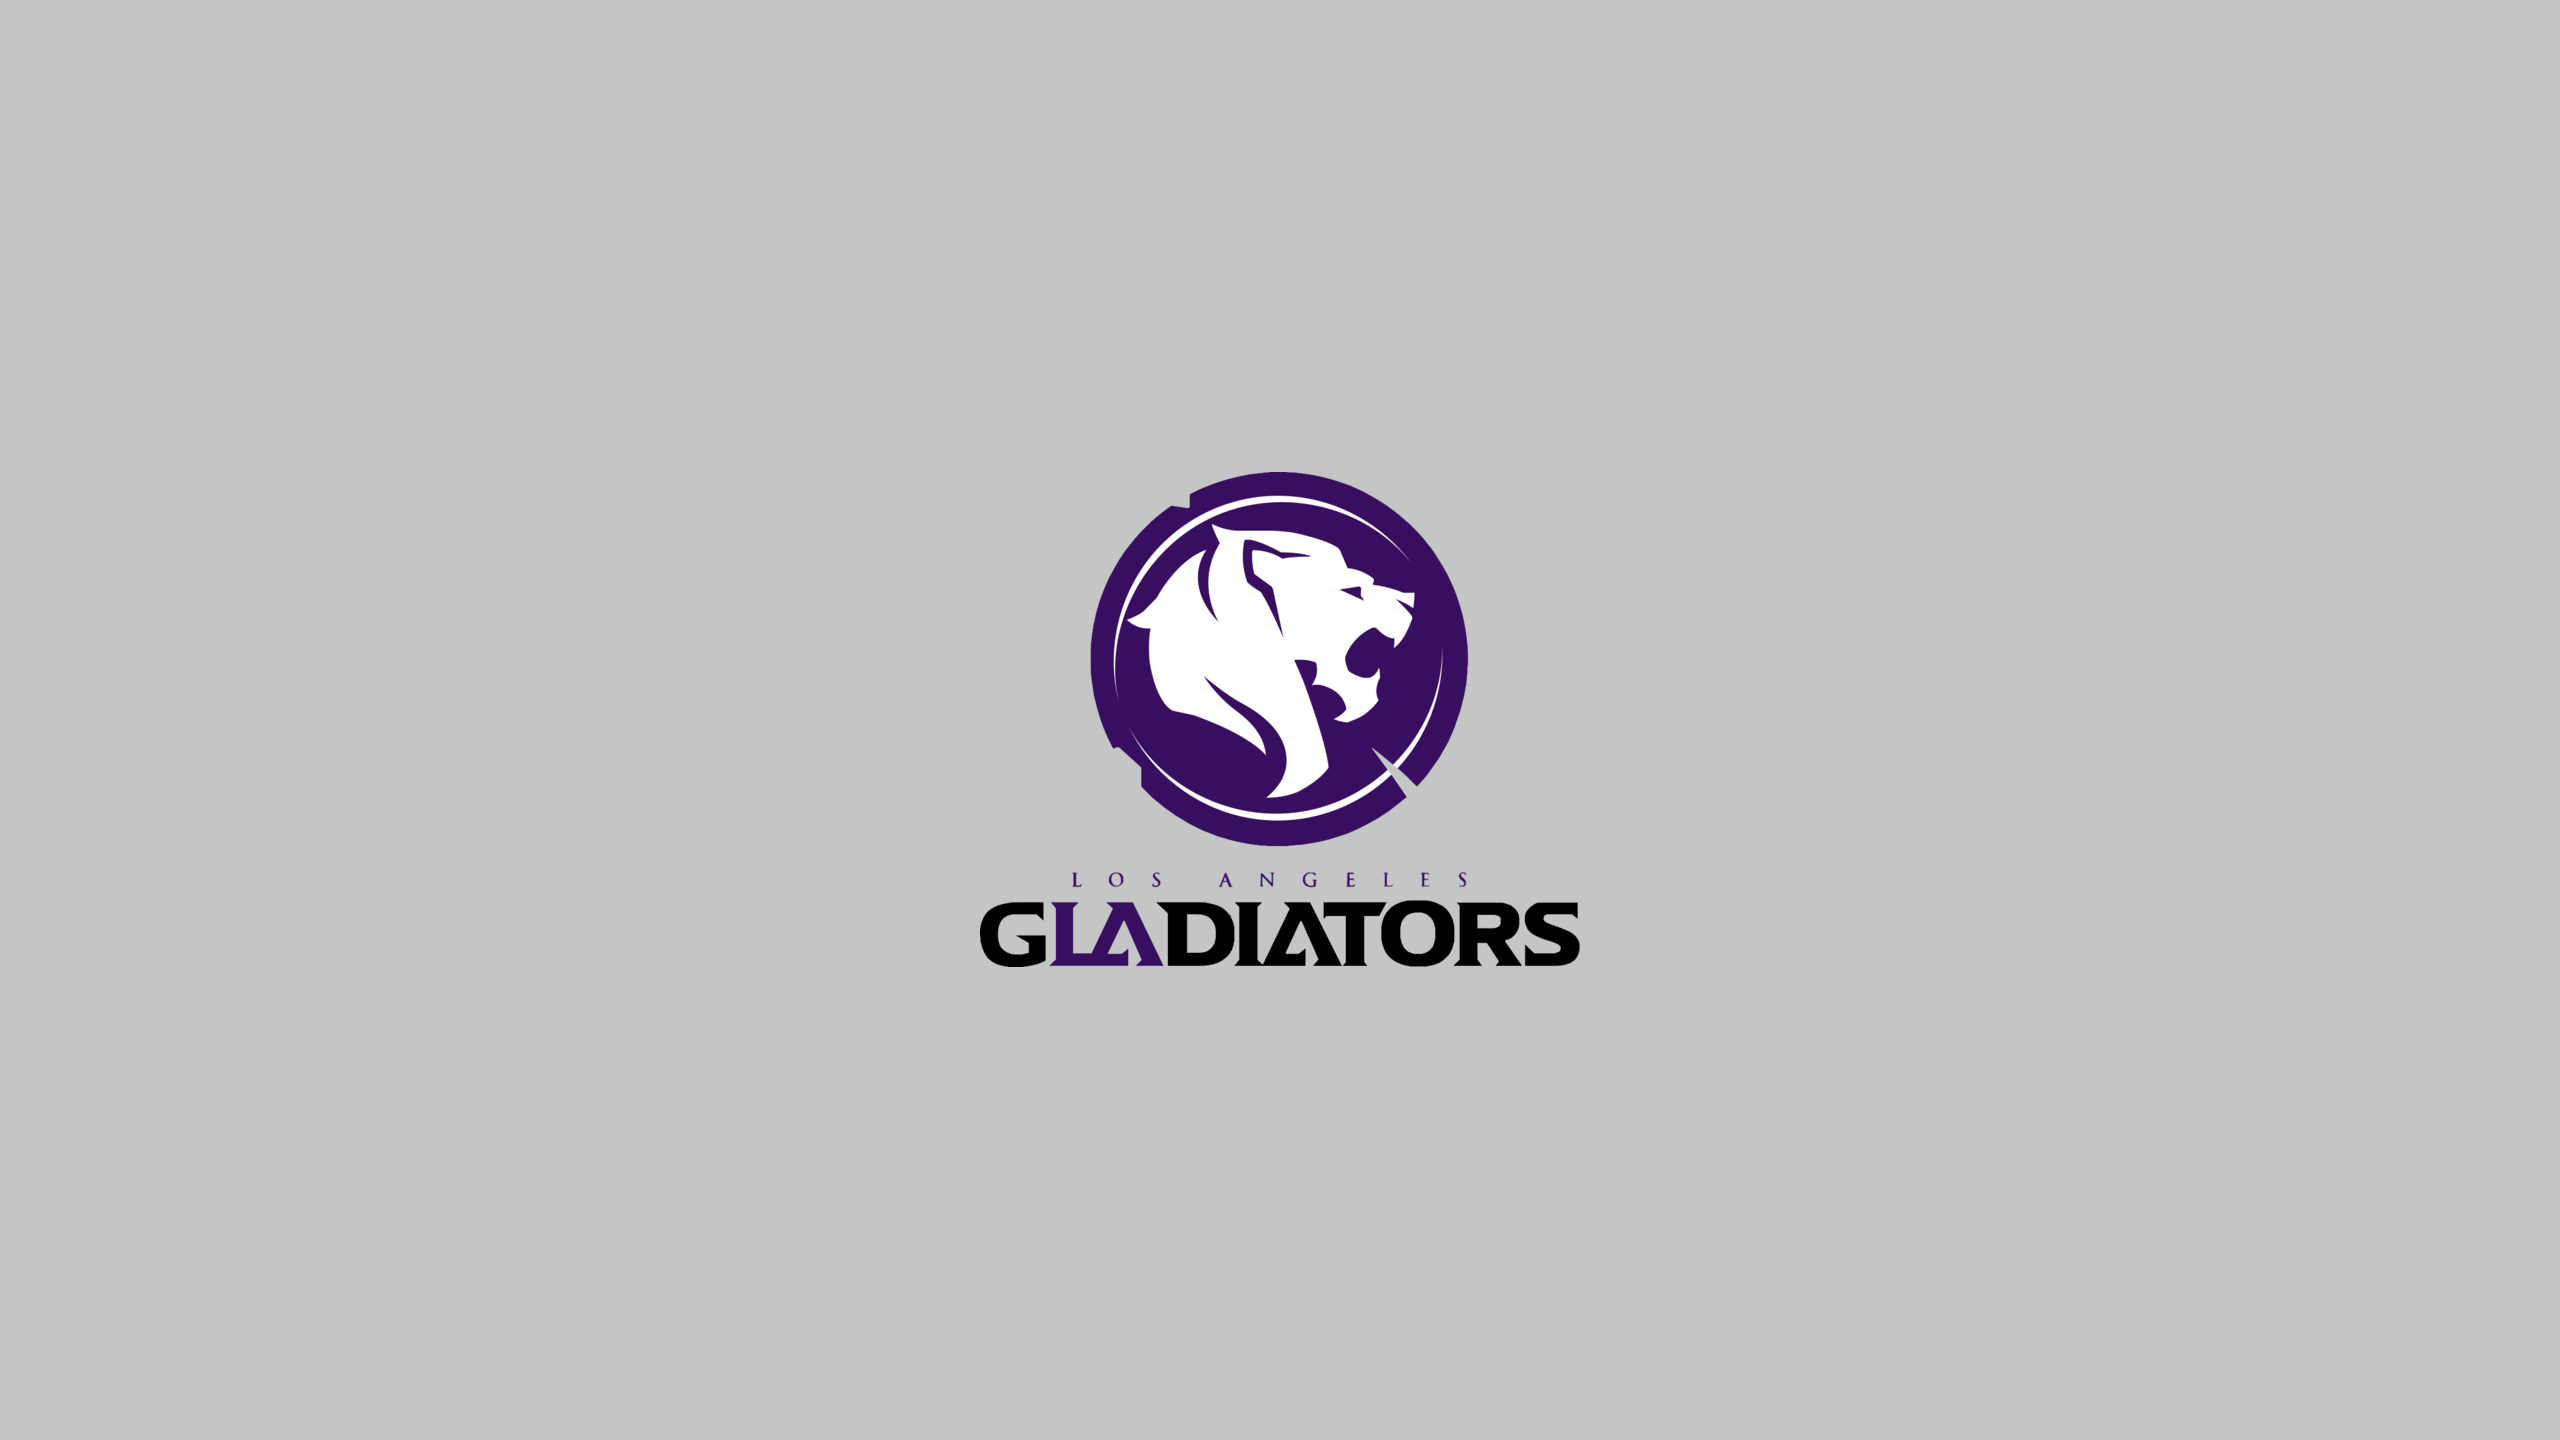 Los Angeles Gladiators